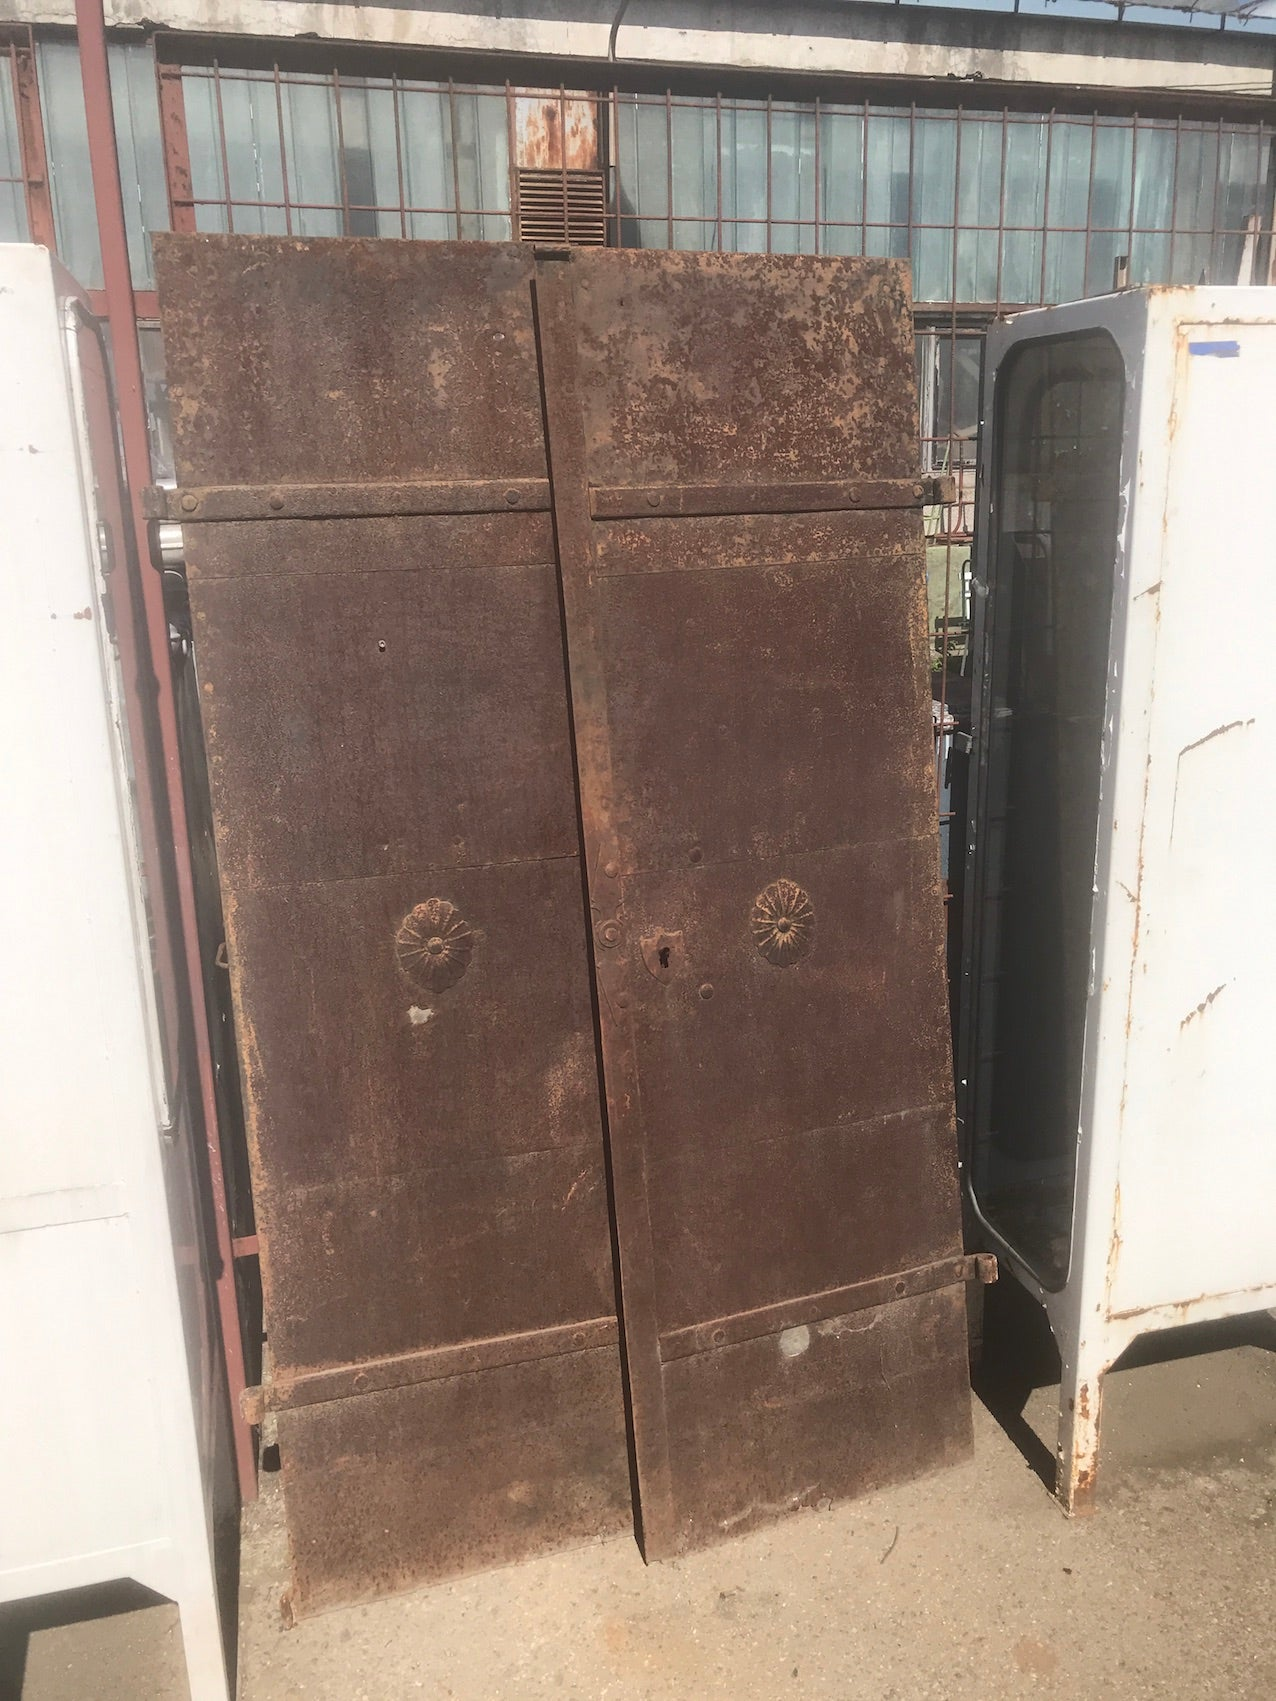 Vintage industrial iron factory doors #2315 end of sep container